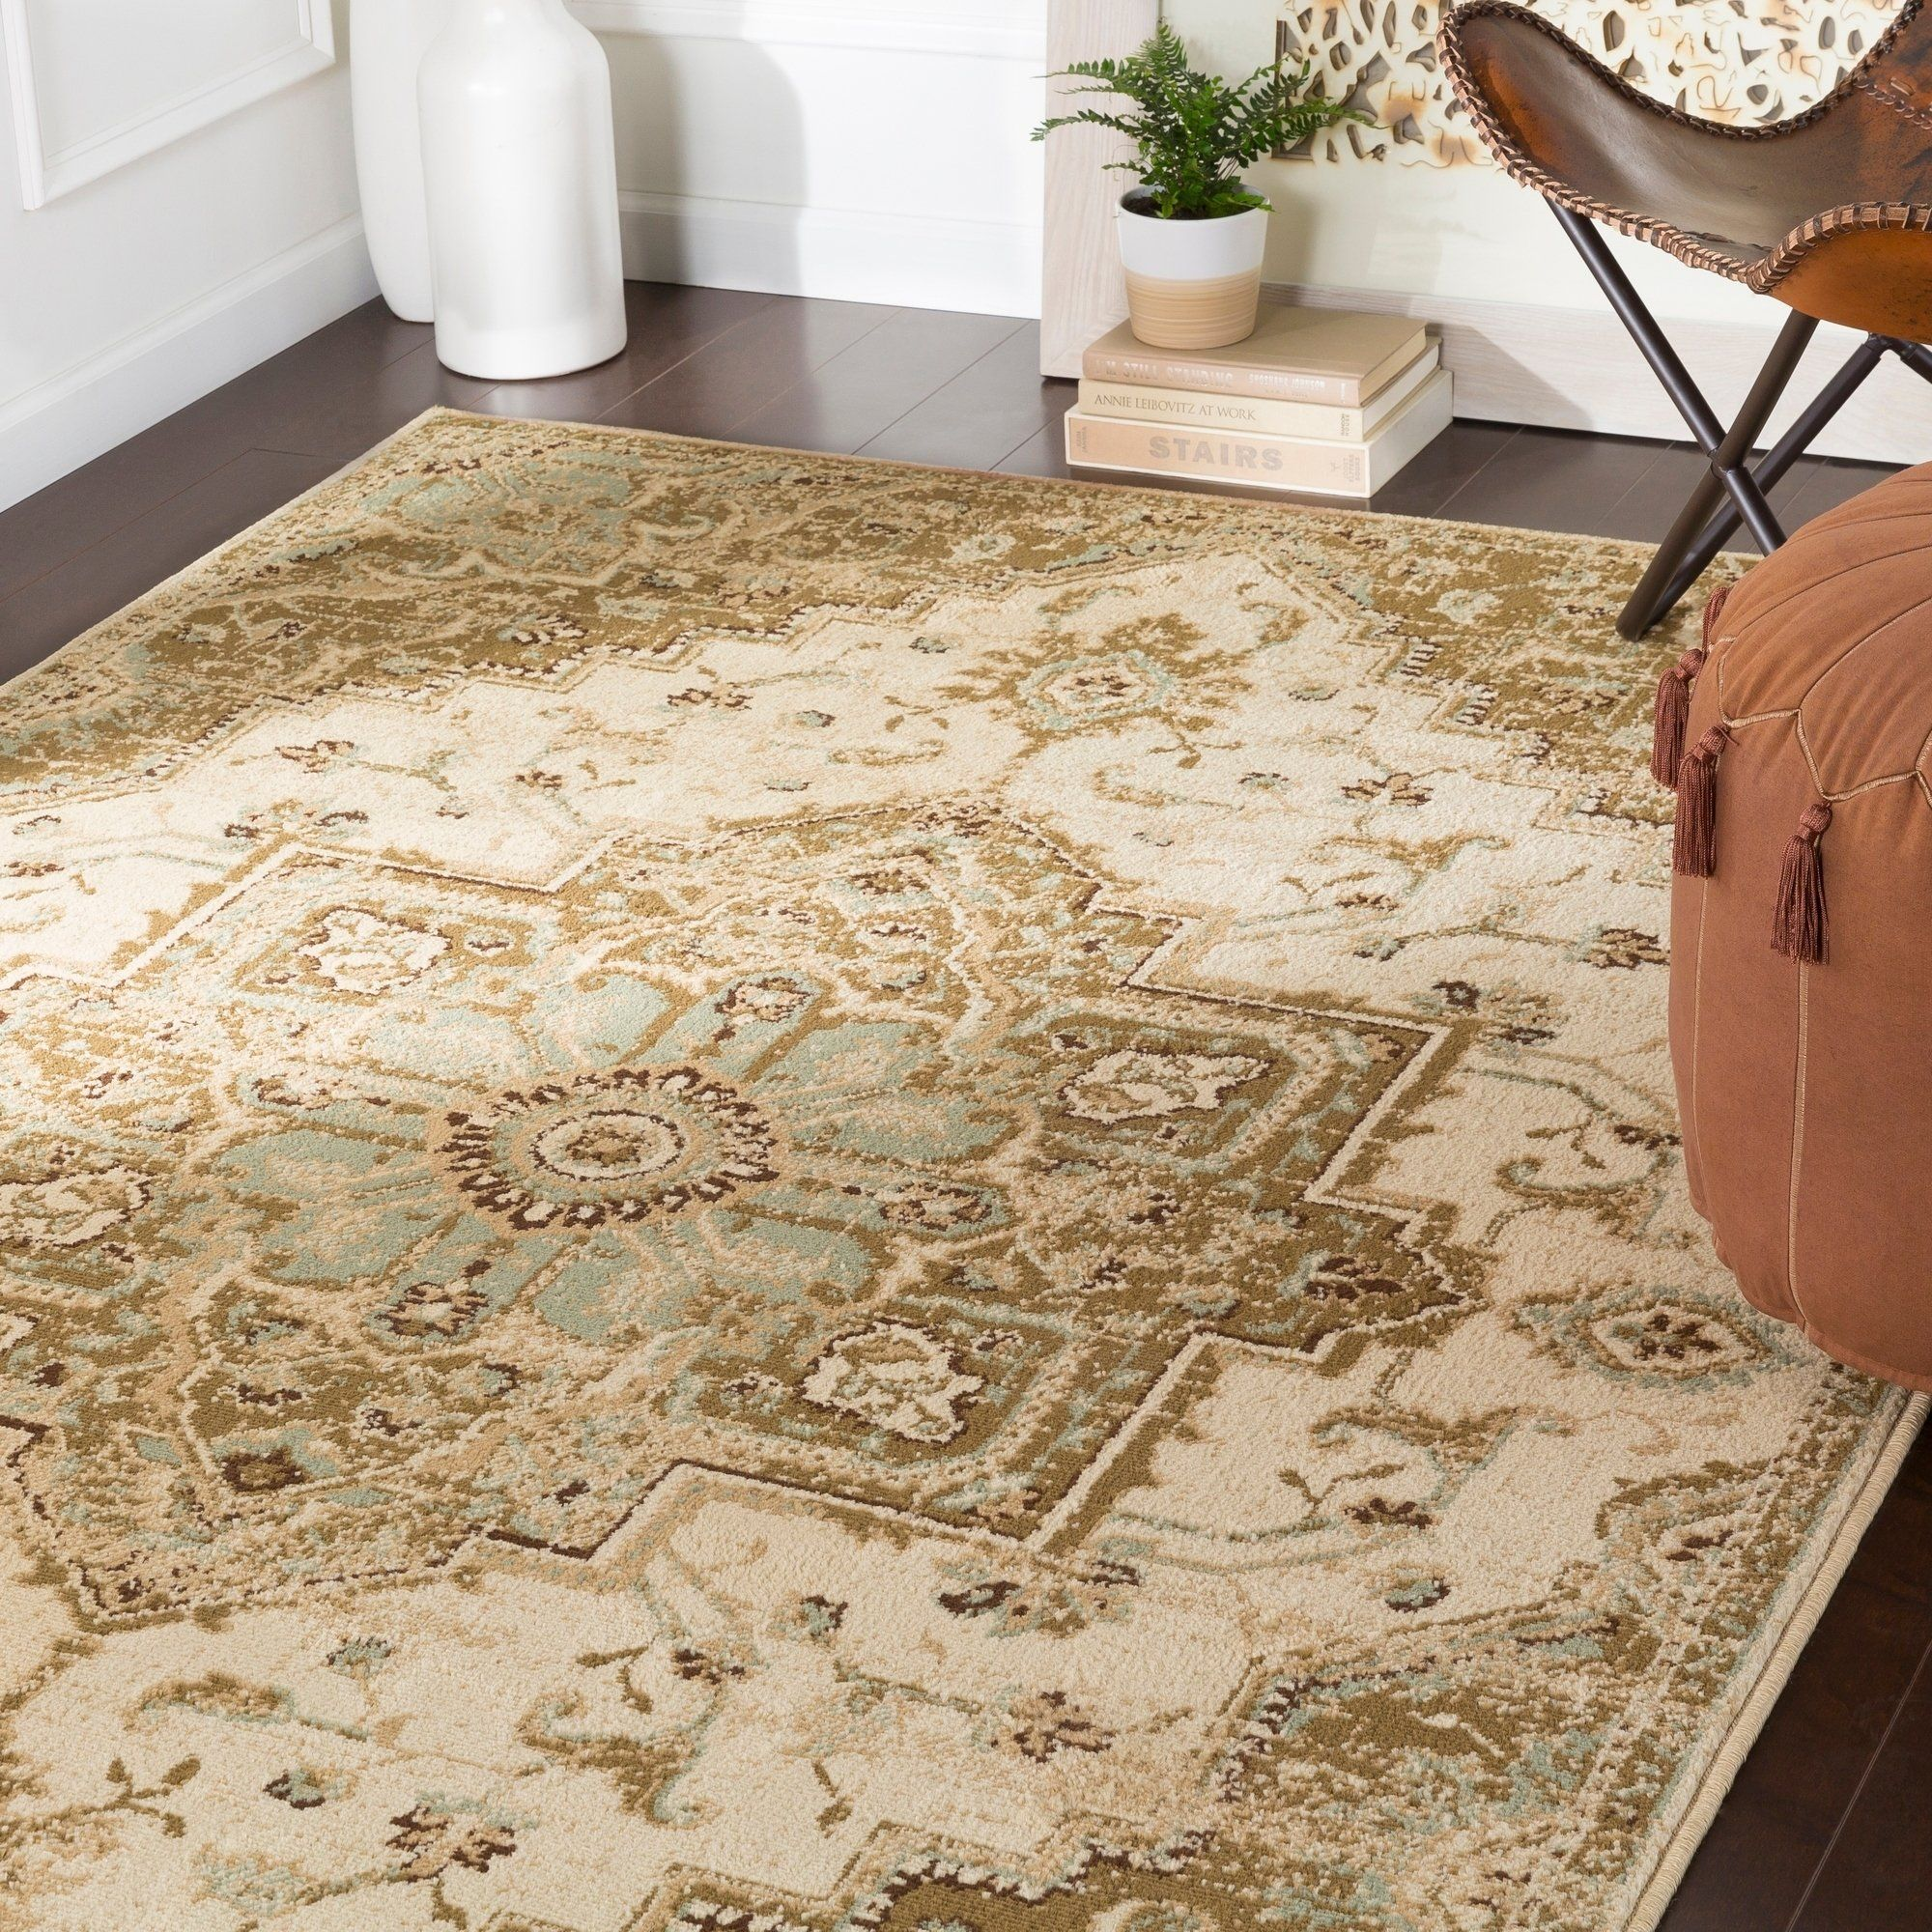 Demetria Traditional Beige Area Rug 7 9 X 11 2 7 9 X 11 2